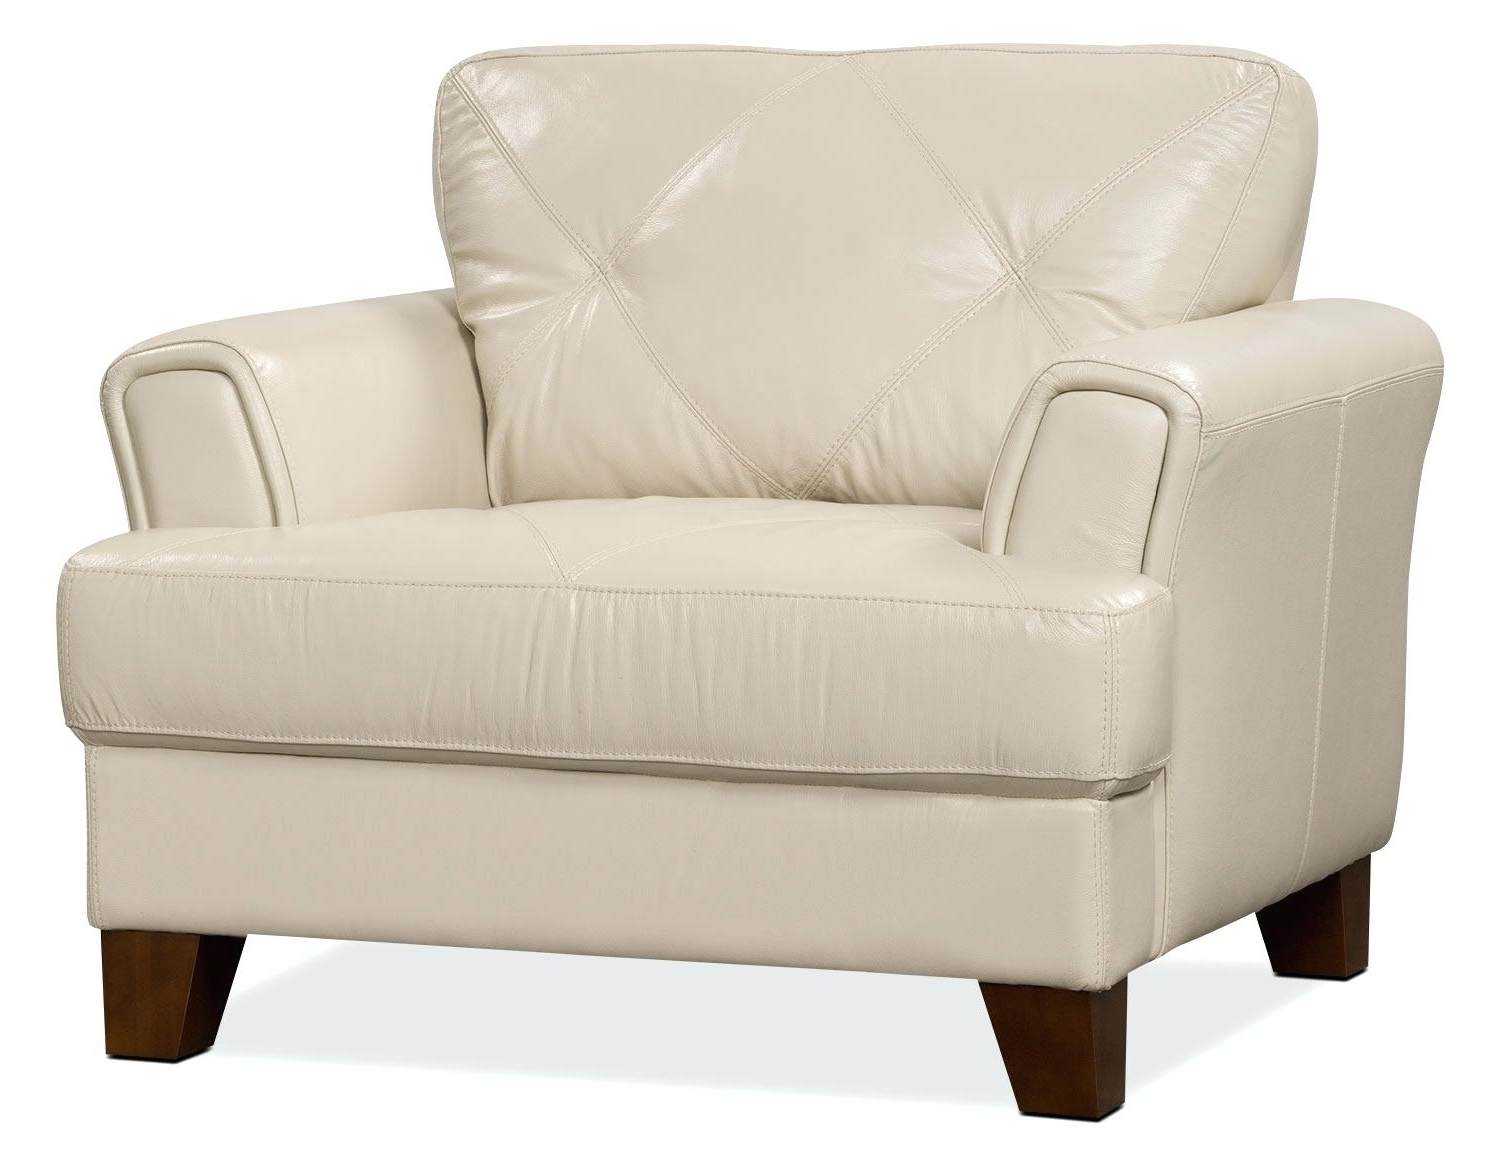 Cindy Crawford Sofas In Well Known Cindy Crawford Leather Furniture Vita Genuine Chair Smoke The (View 10 of 15)